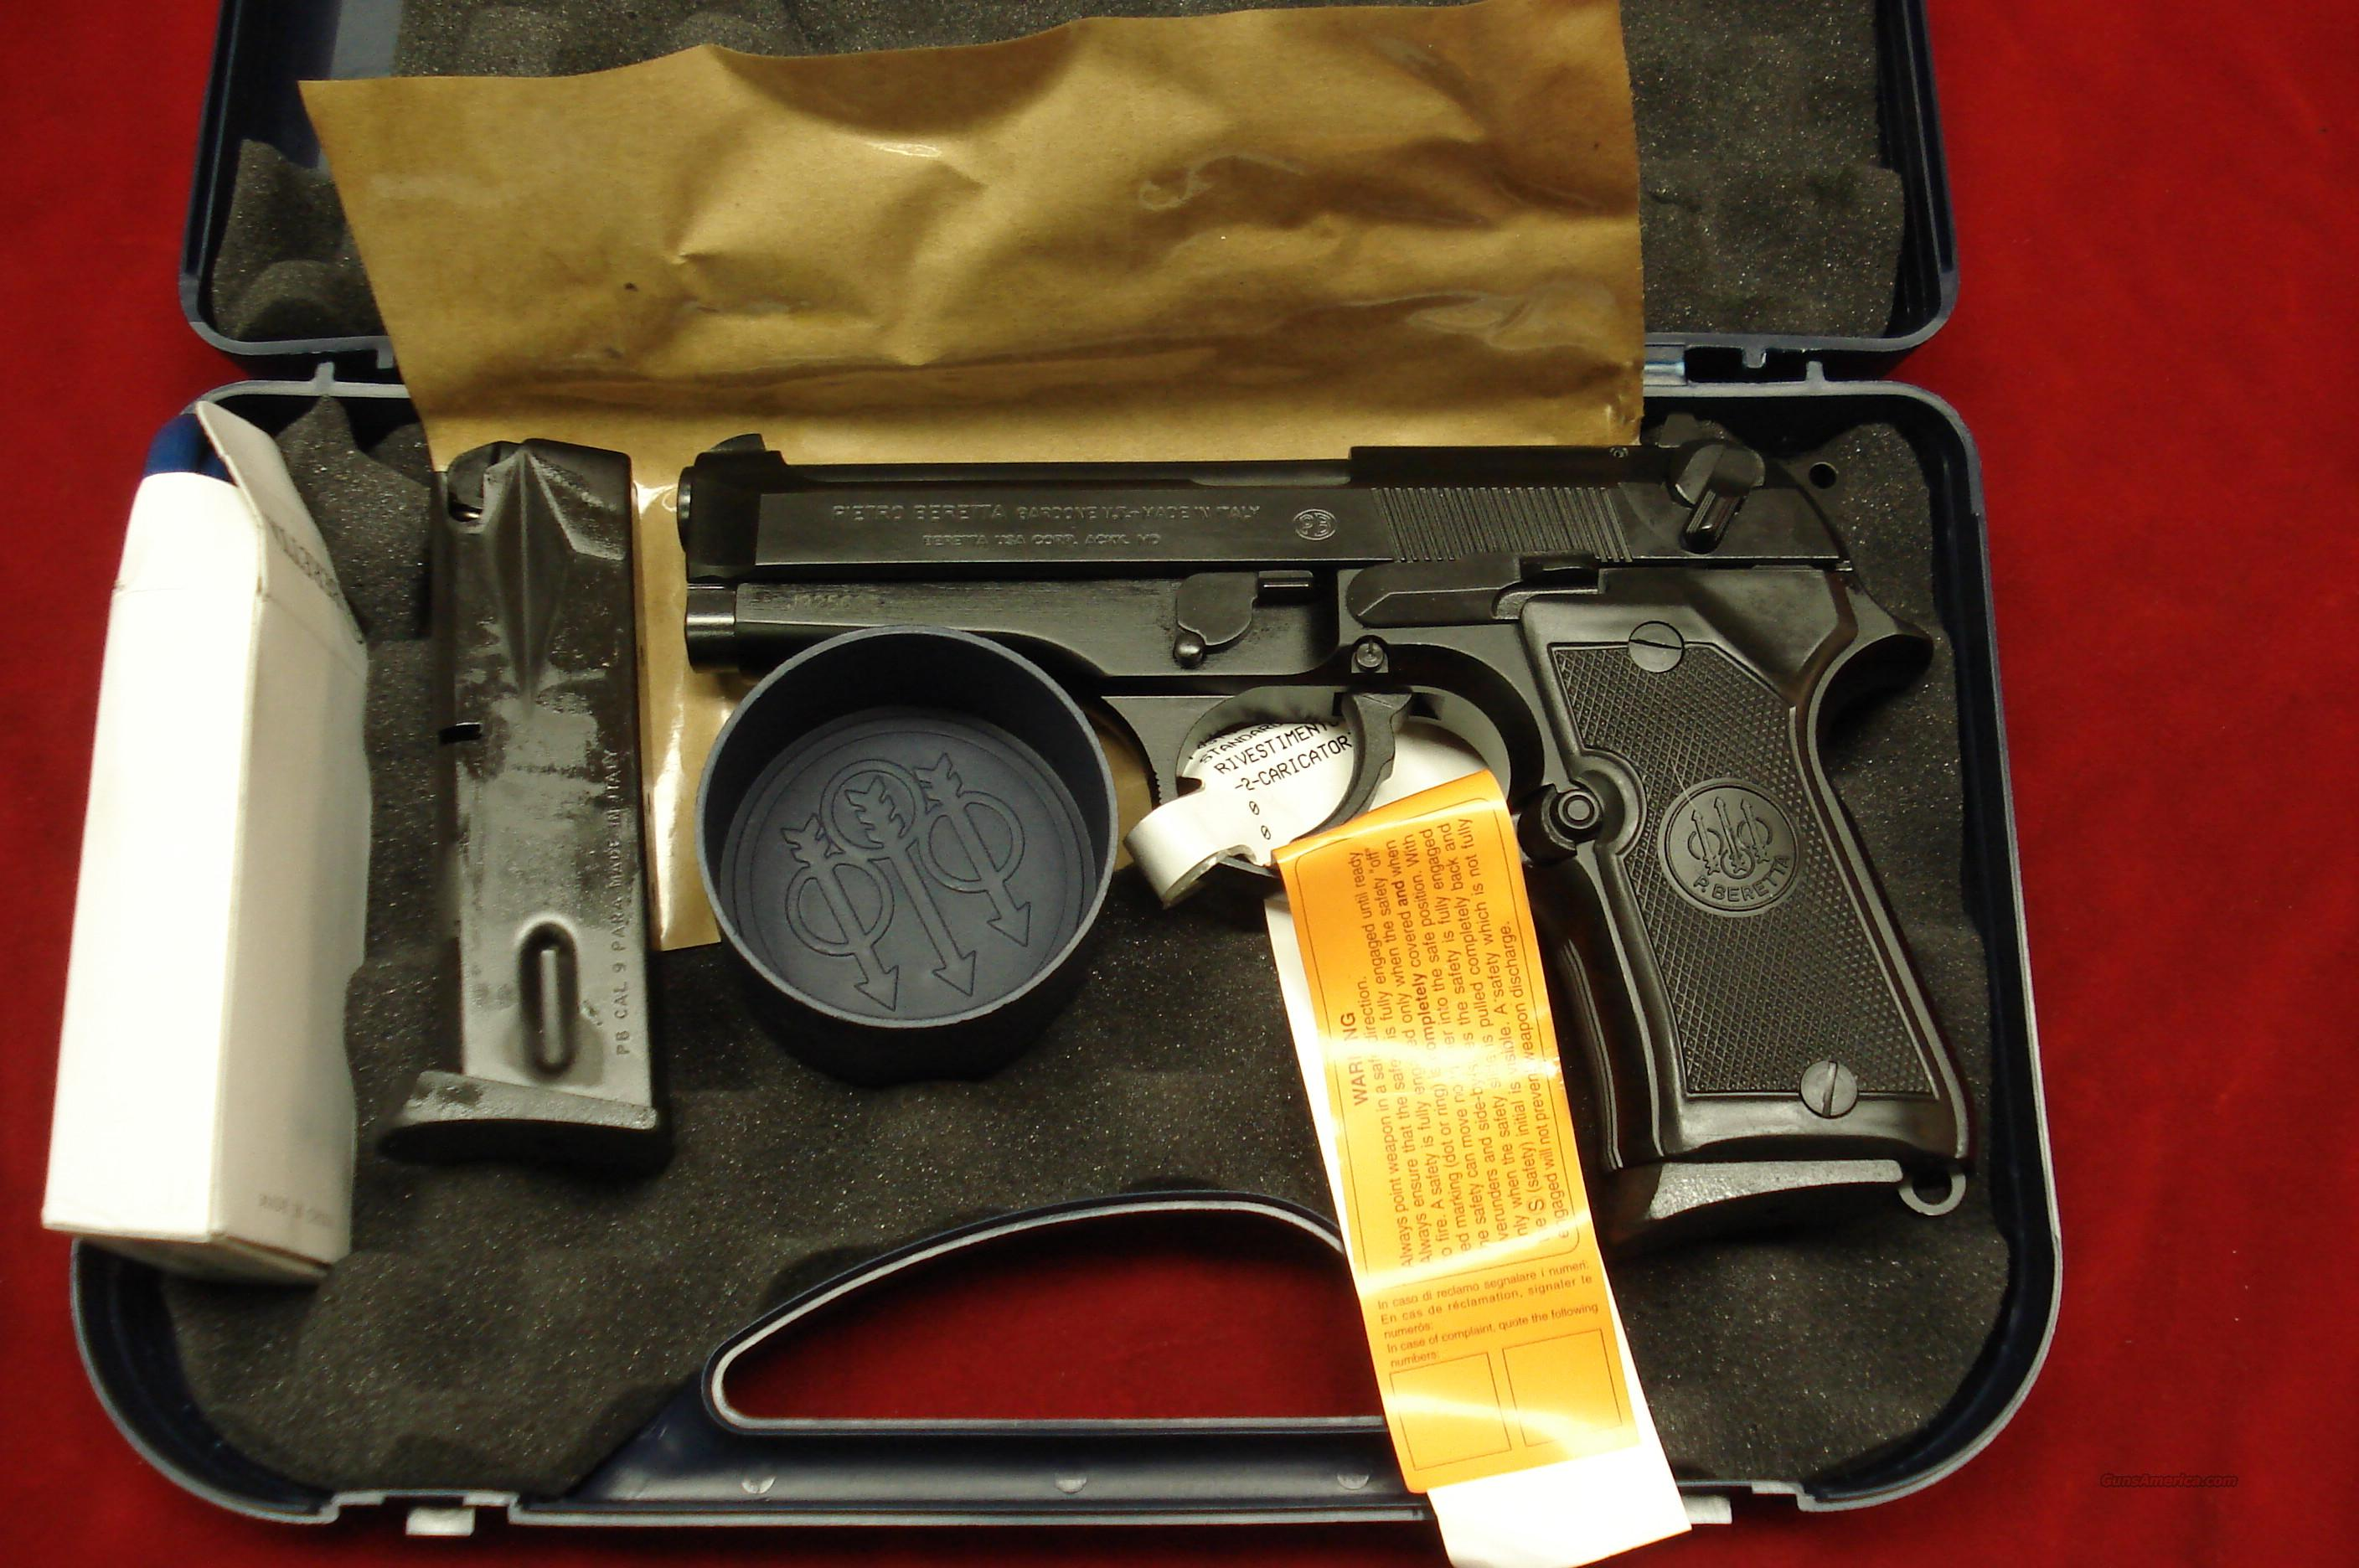 BERETTA NEW ITALIAN 92FS COMPACT 9MM CAL. HIGH CAPACITY NEW   Guns > Pistols > Beretta Pistols > Model 92 Series